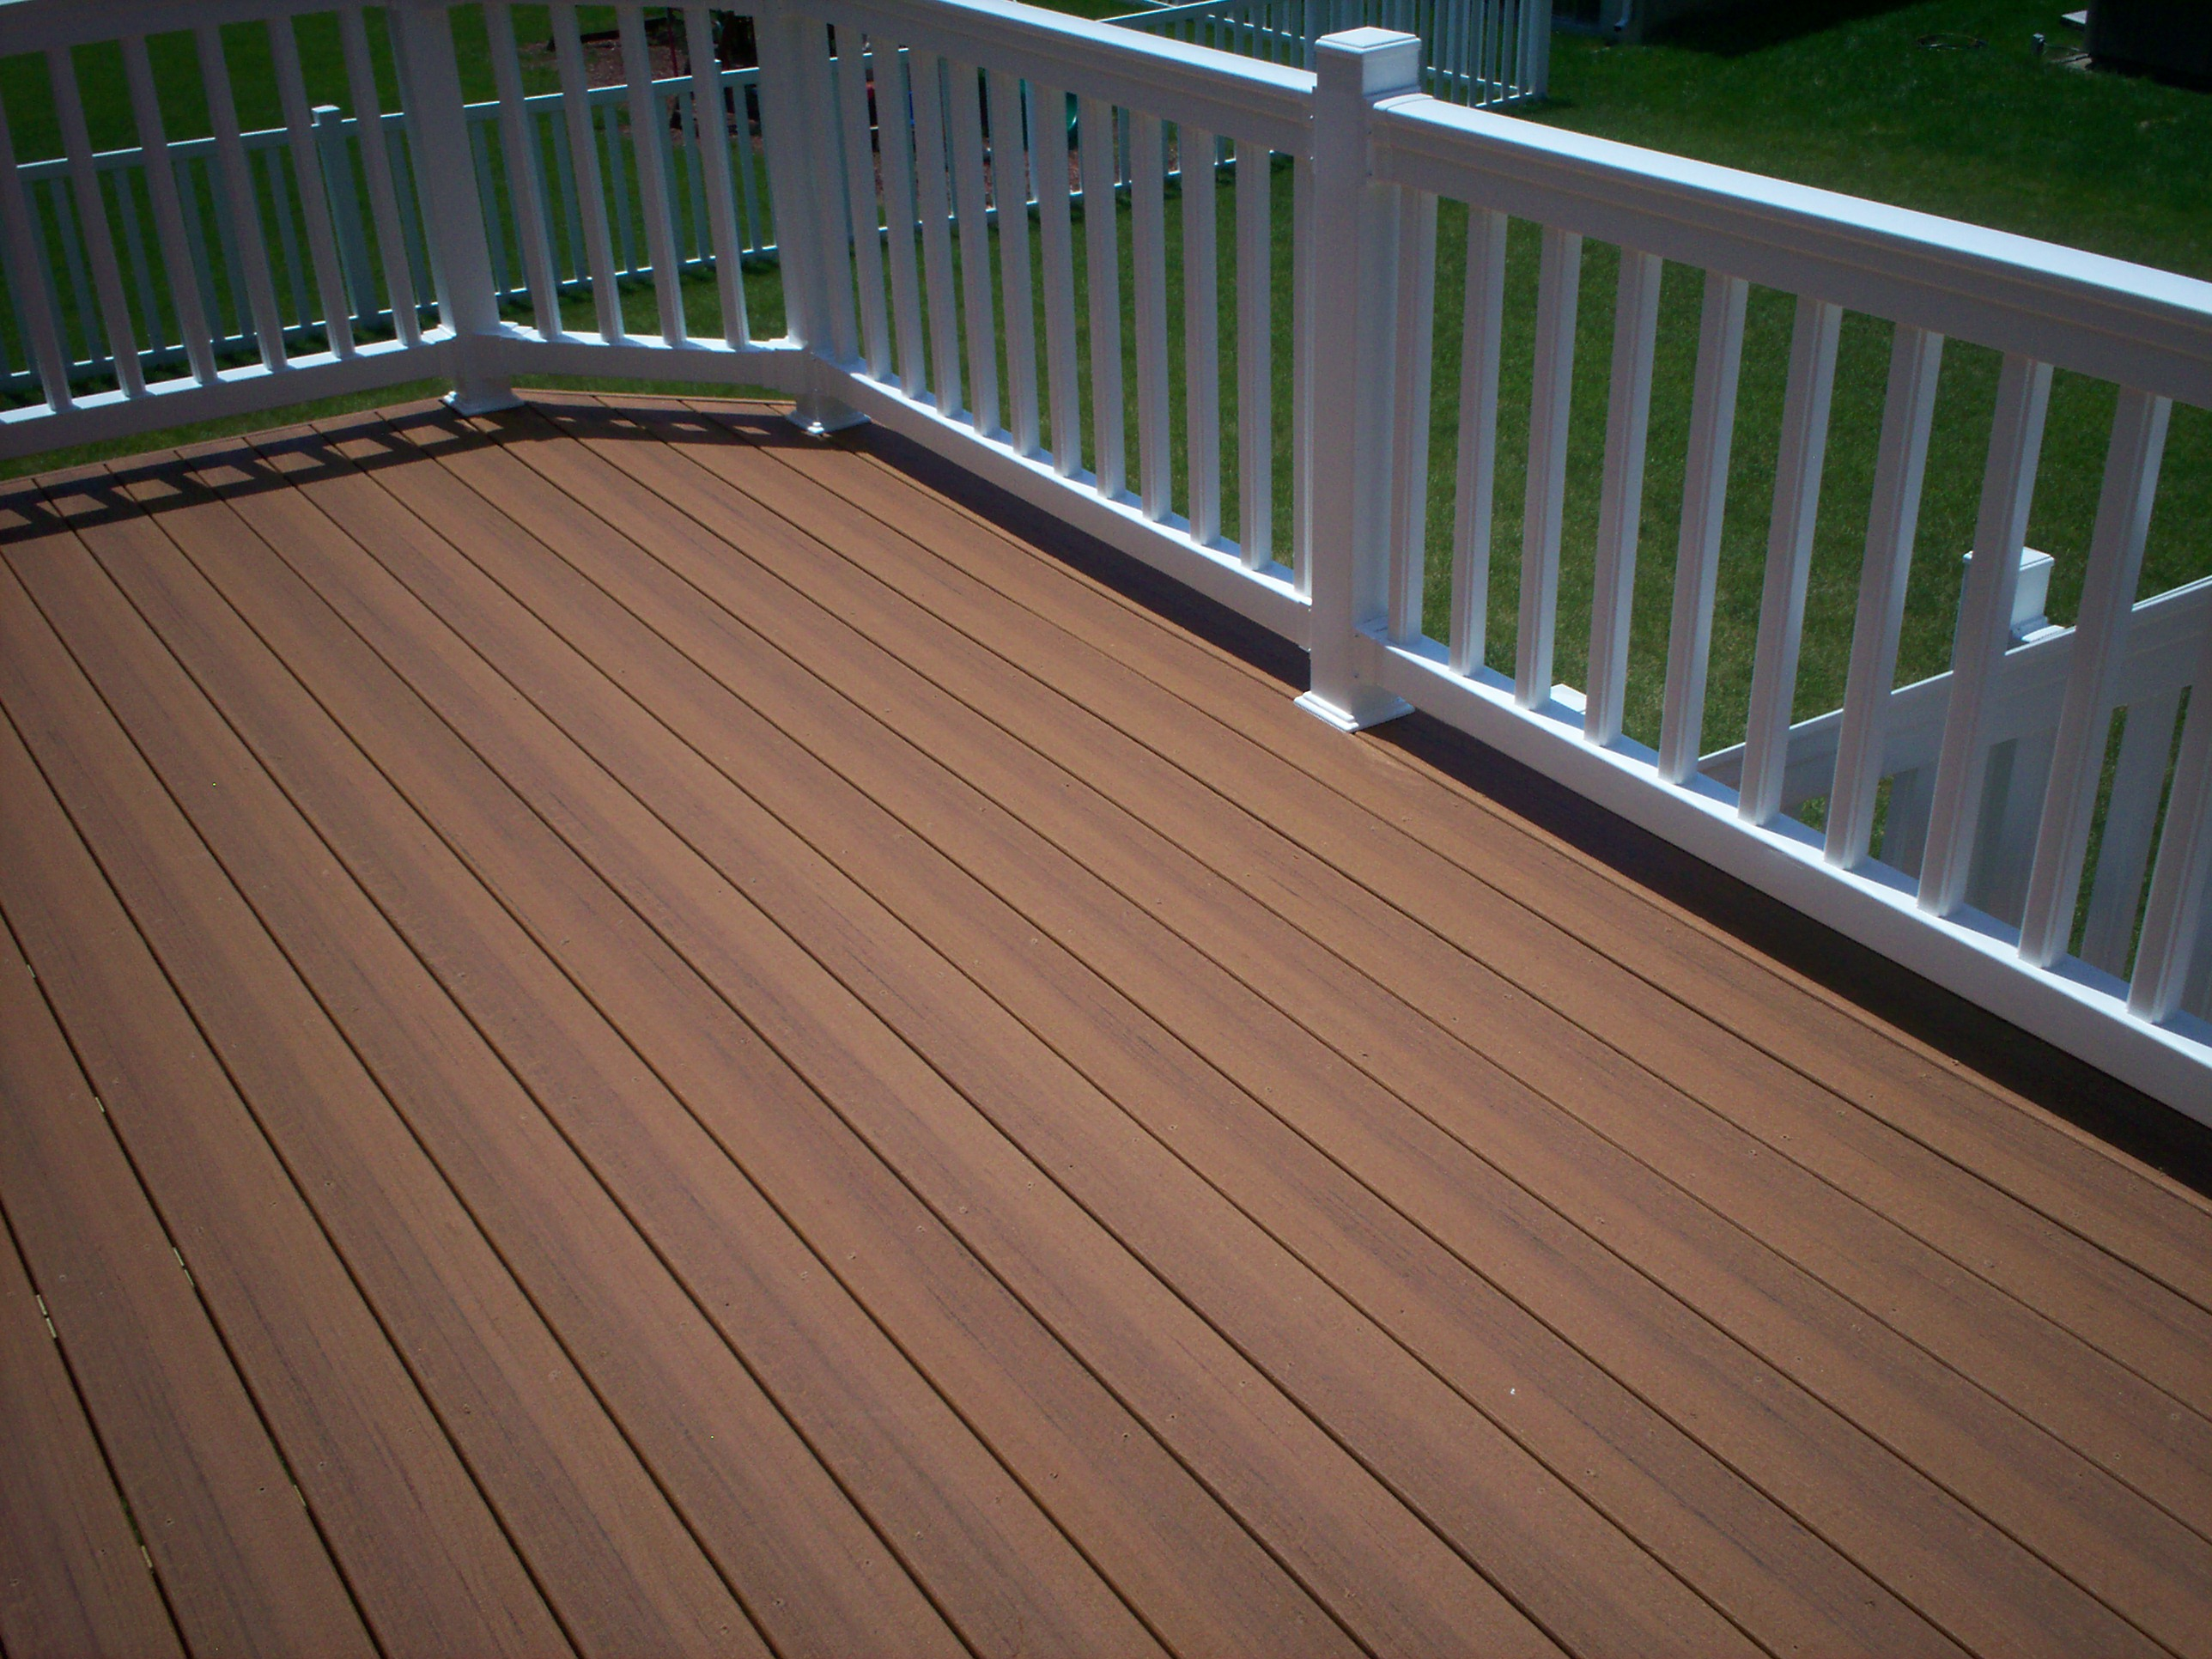 peru evergrain decking plus white railing for patio ideas